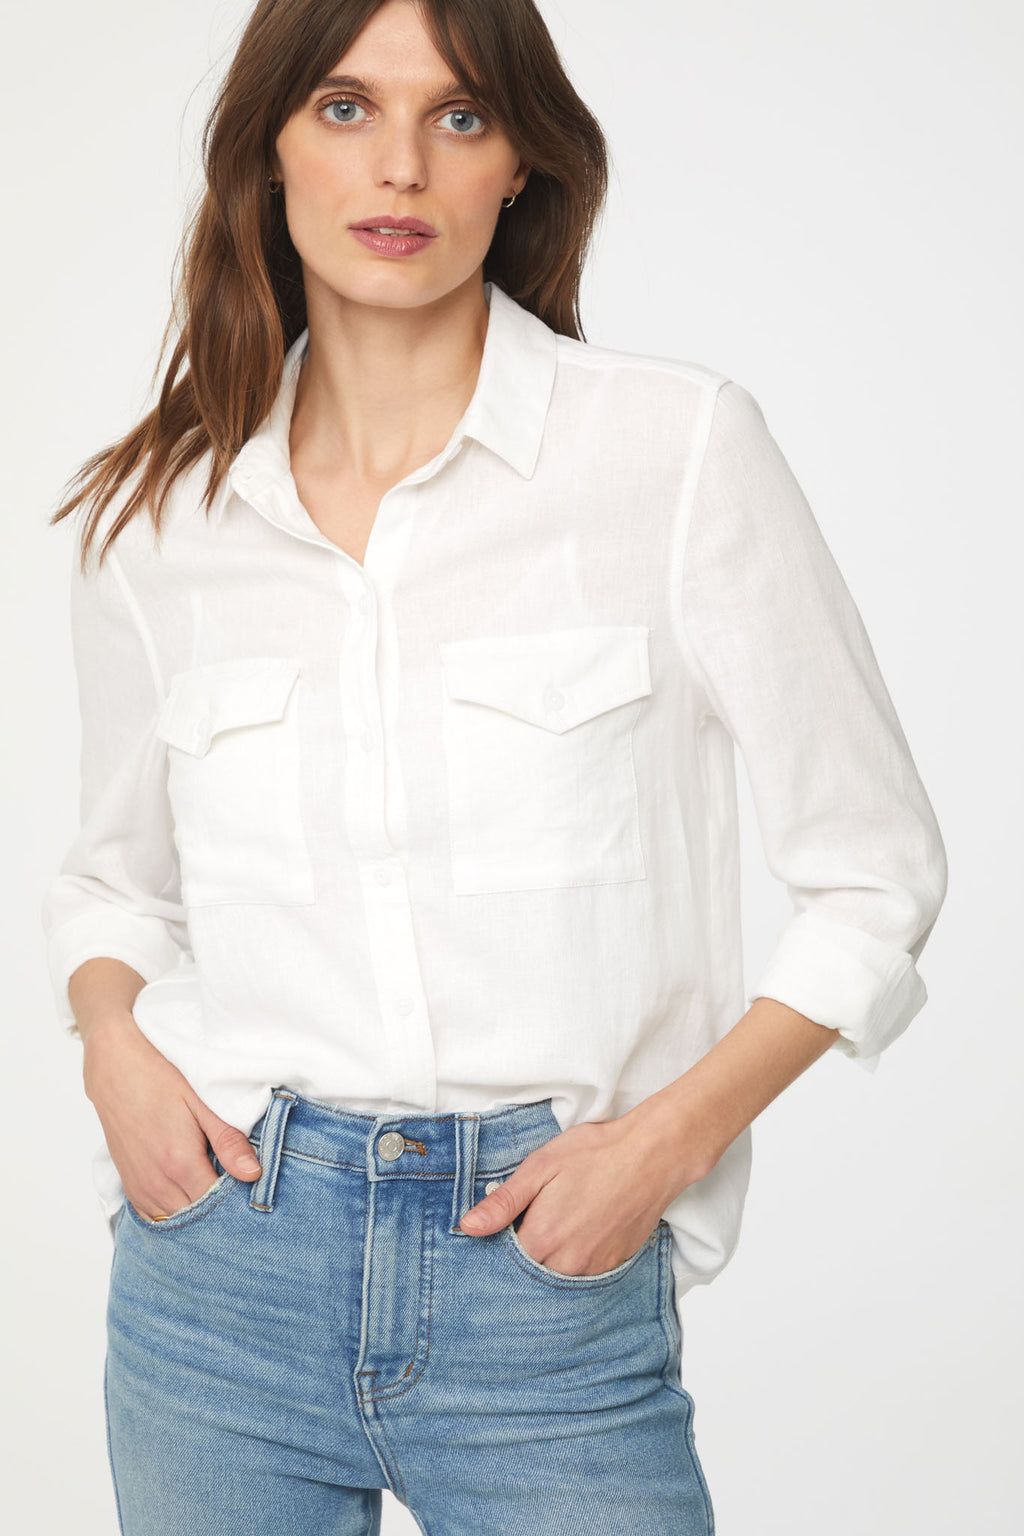 Women's White Long Sleeve Button Up with Front Pockets